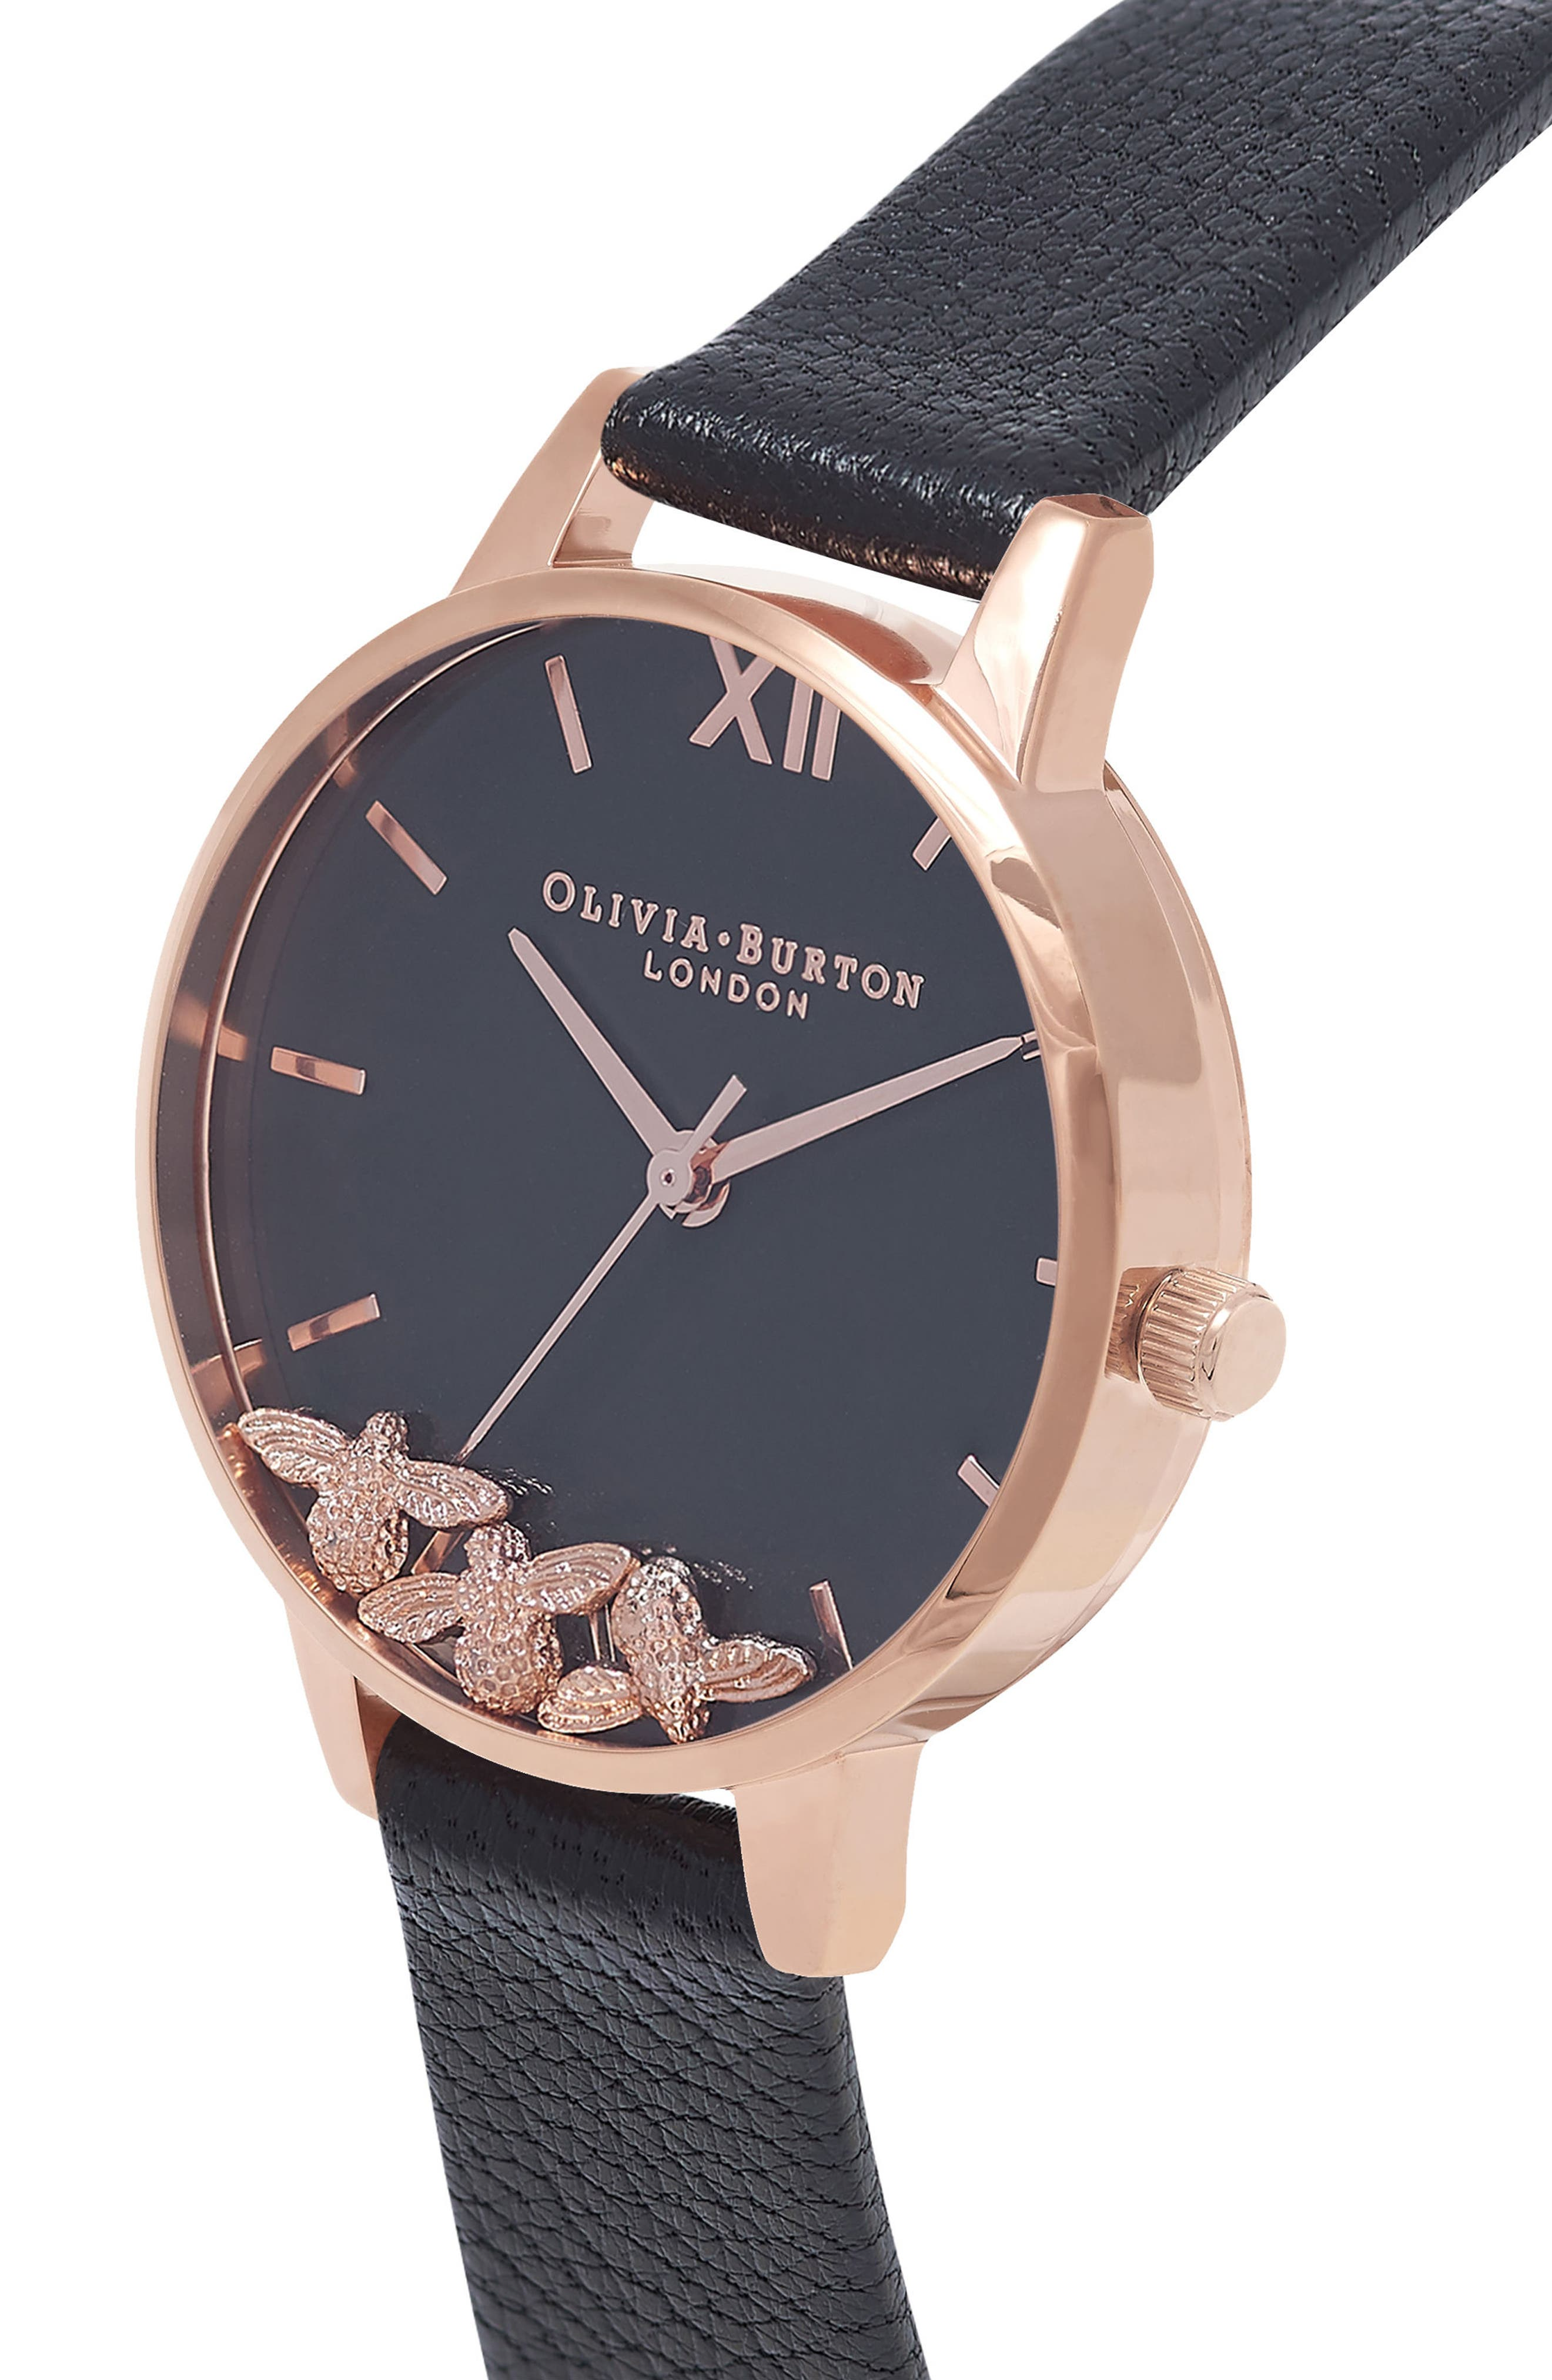 OLIVIA BURTON,                             Busy Bees Leather Strap Watch, 30mm,                             Alternate thumbnail 5, color,                             BLACK/ ROSE GOLD